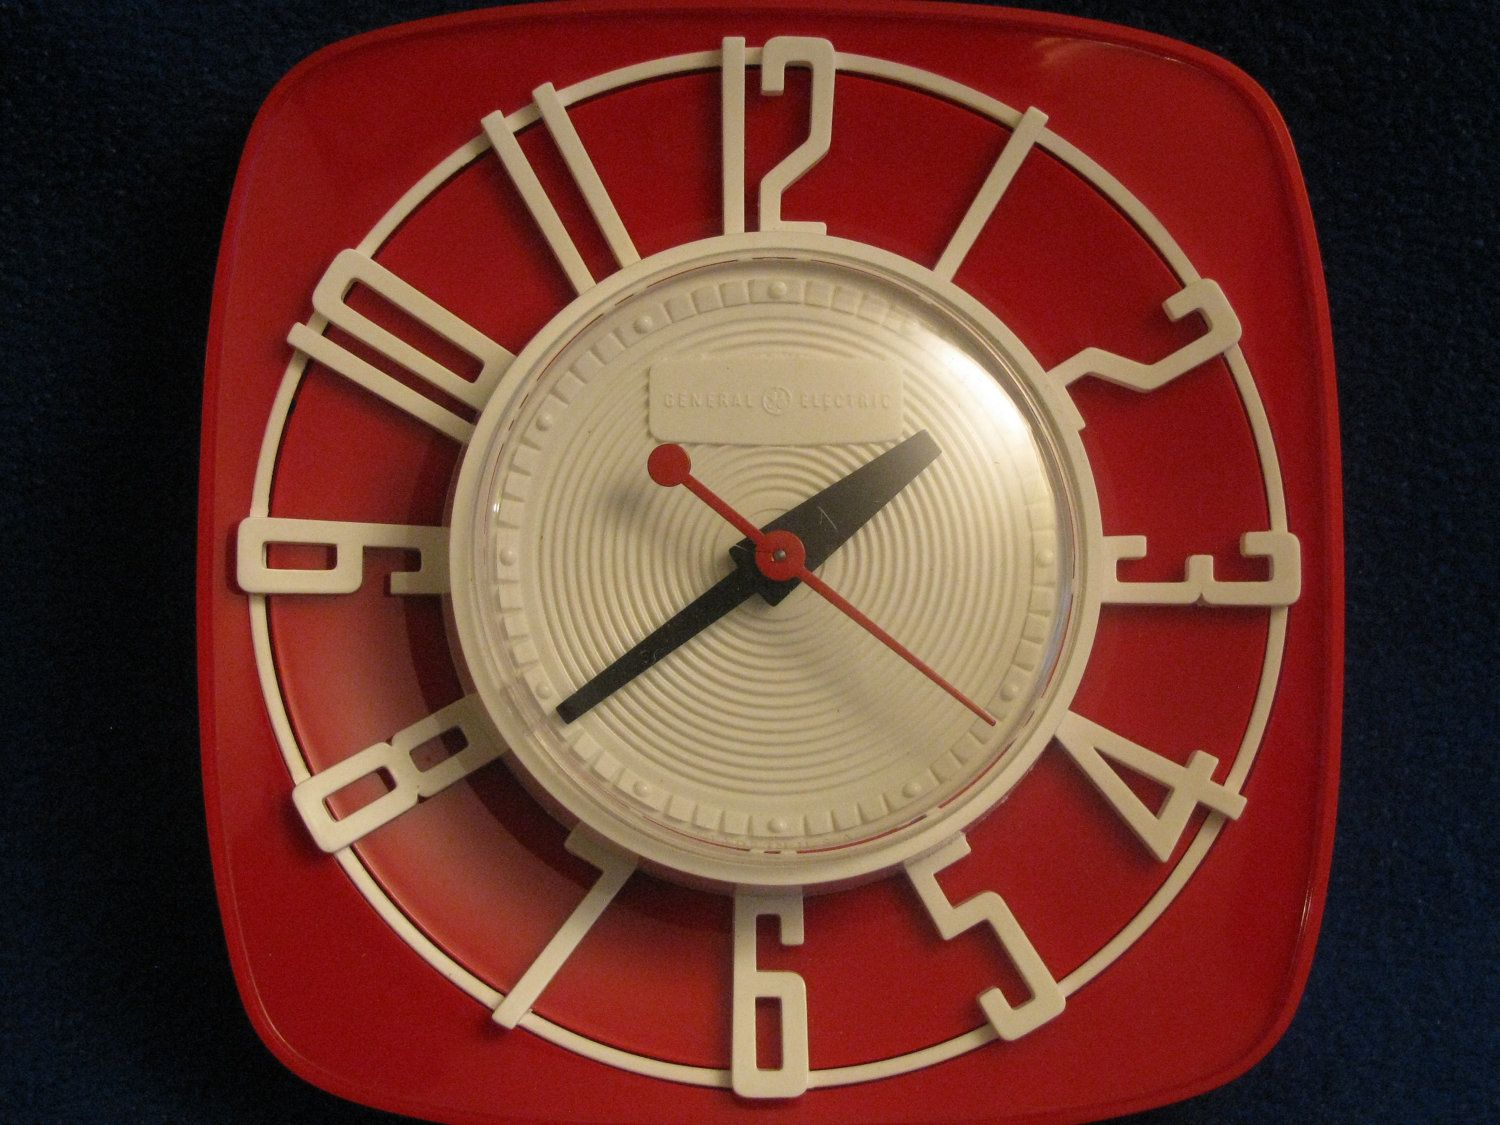 1950s Mint Red General Electric Topper Red 2h44 Electric Wall Clock With White Dials Clock Vintage Kitchen Decor Kitchen Design Decor